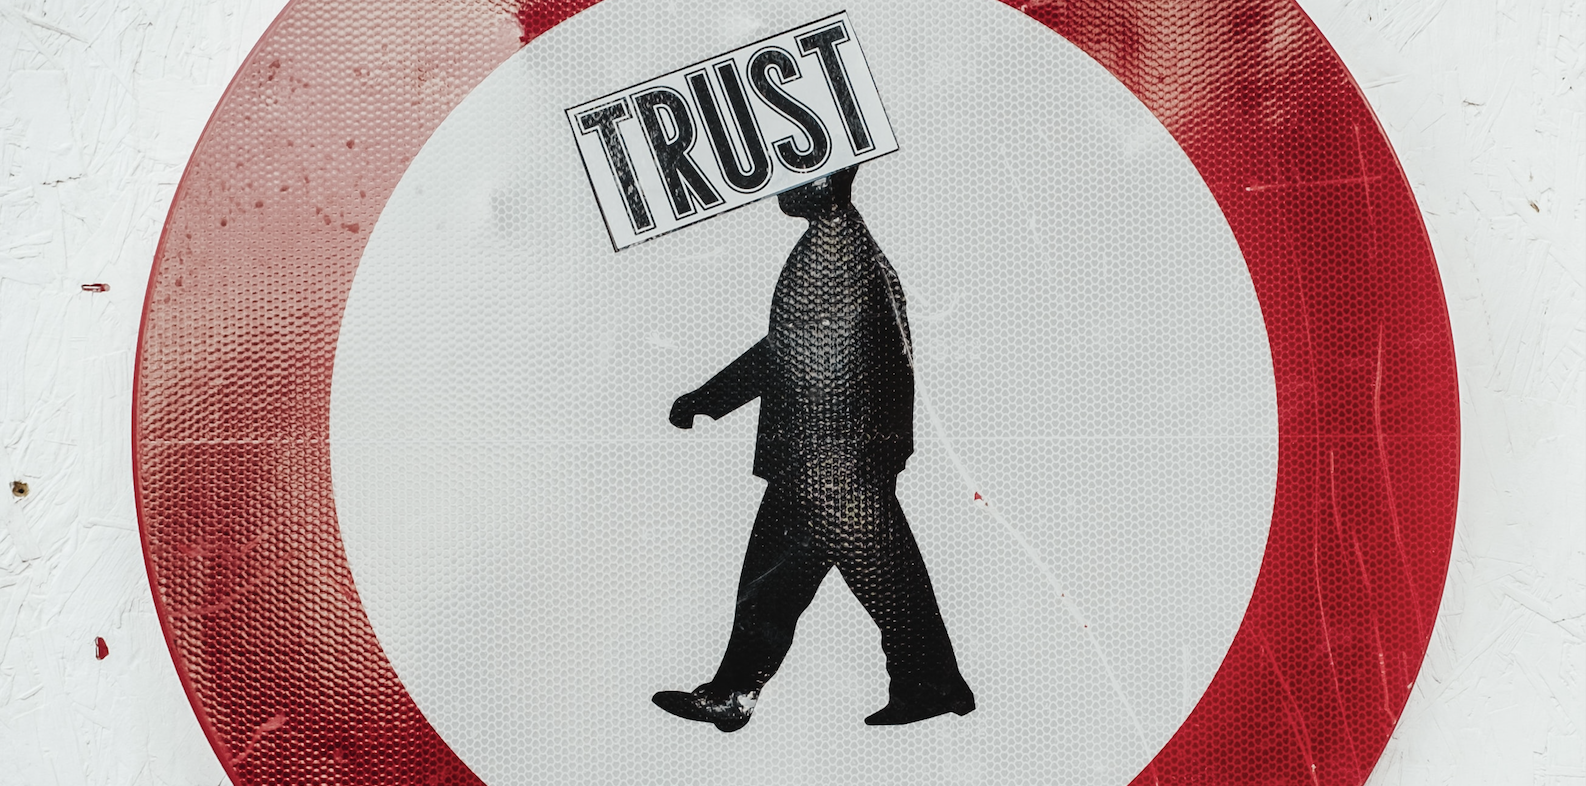 A pedestrian walking sign with a trust sticker on it